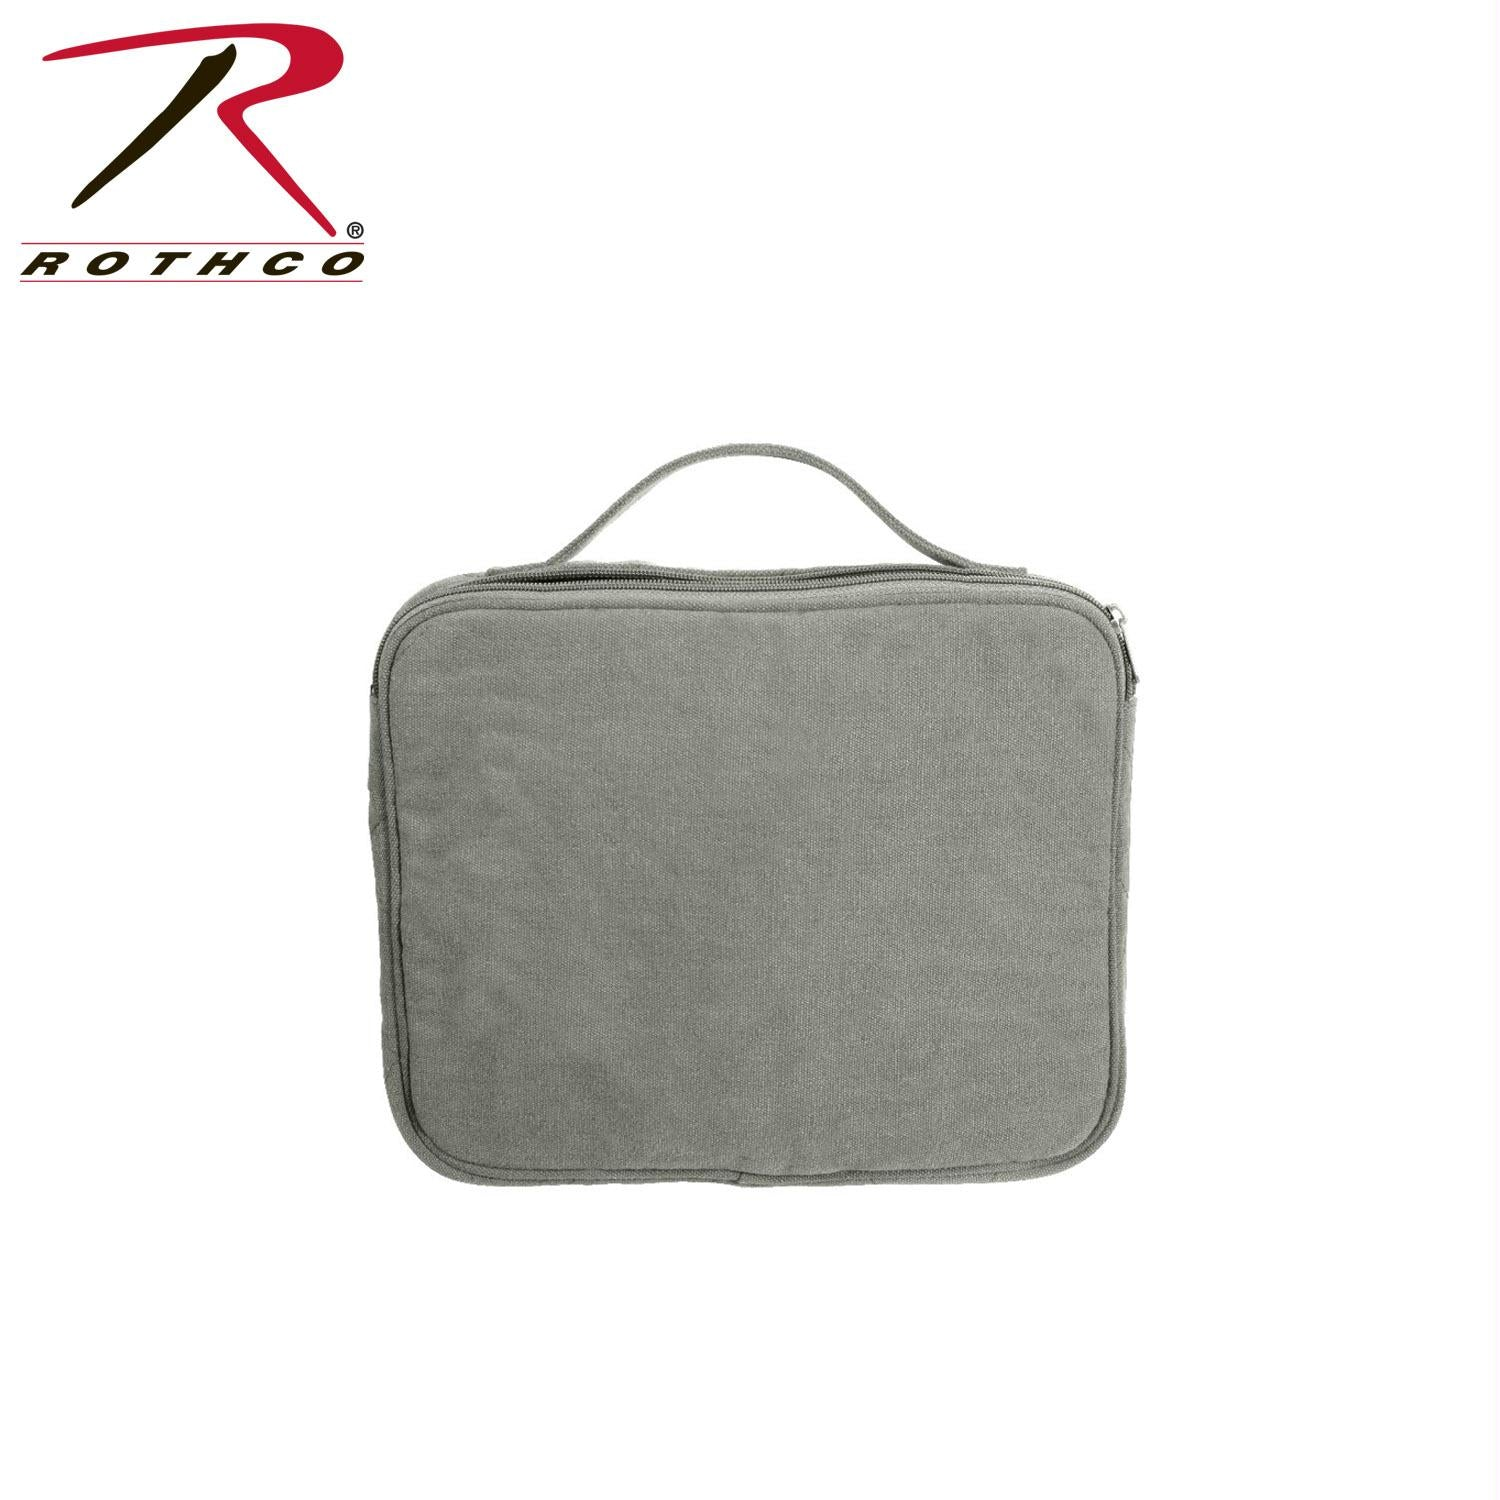 Rothco Vintage Canvas iPad / Netbook Pouch - Vintage Olive Drab